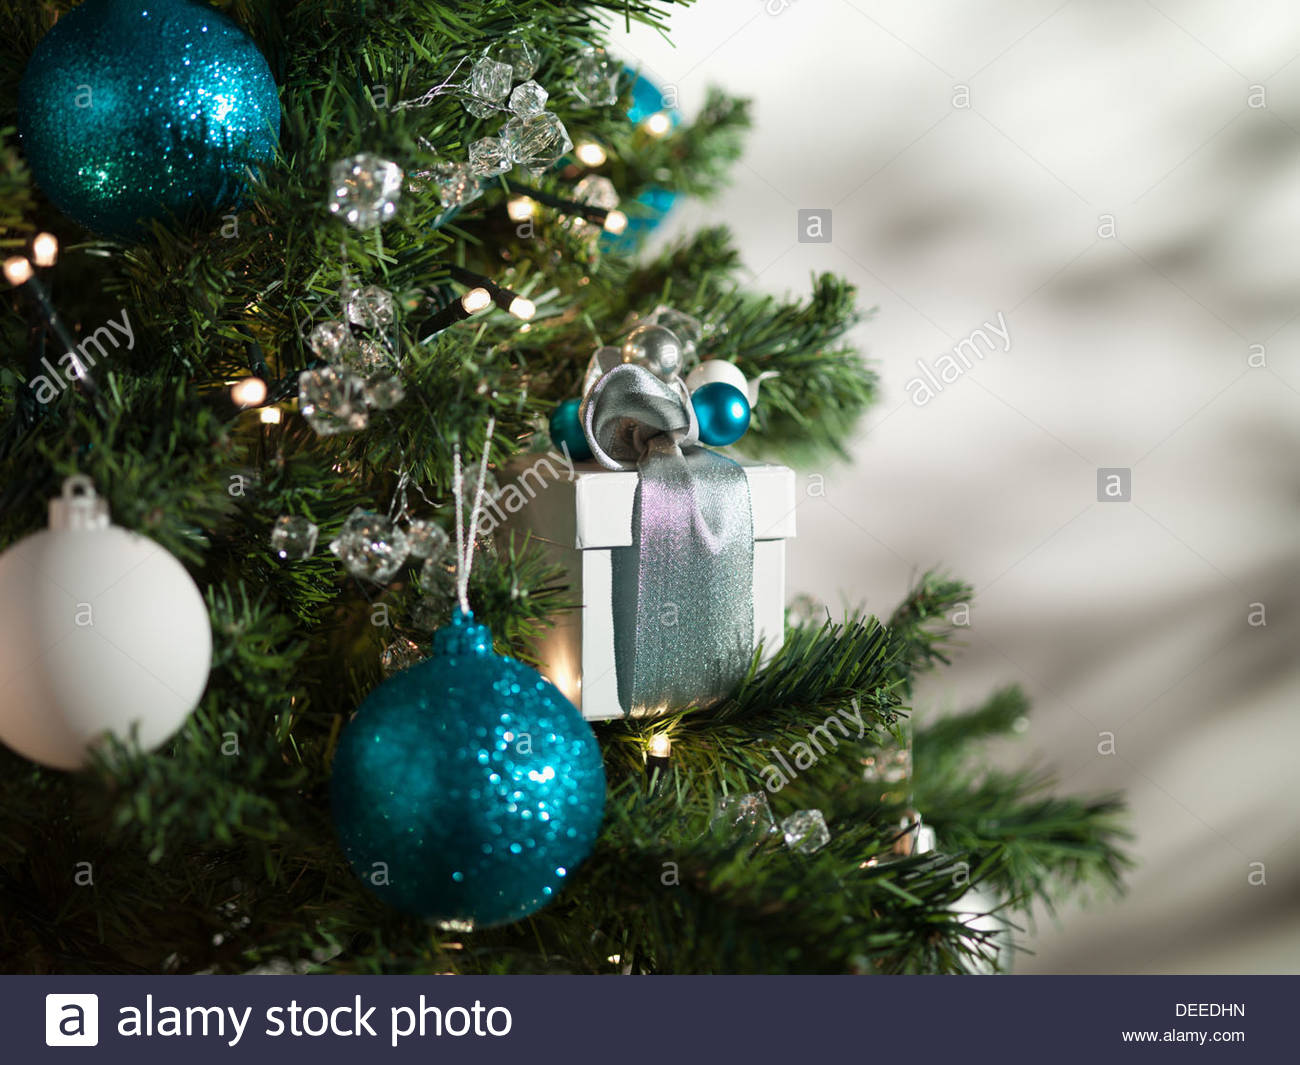 Christmas gift and ornaments on tree - Stock Image